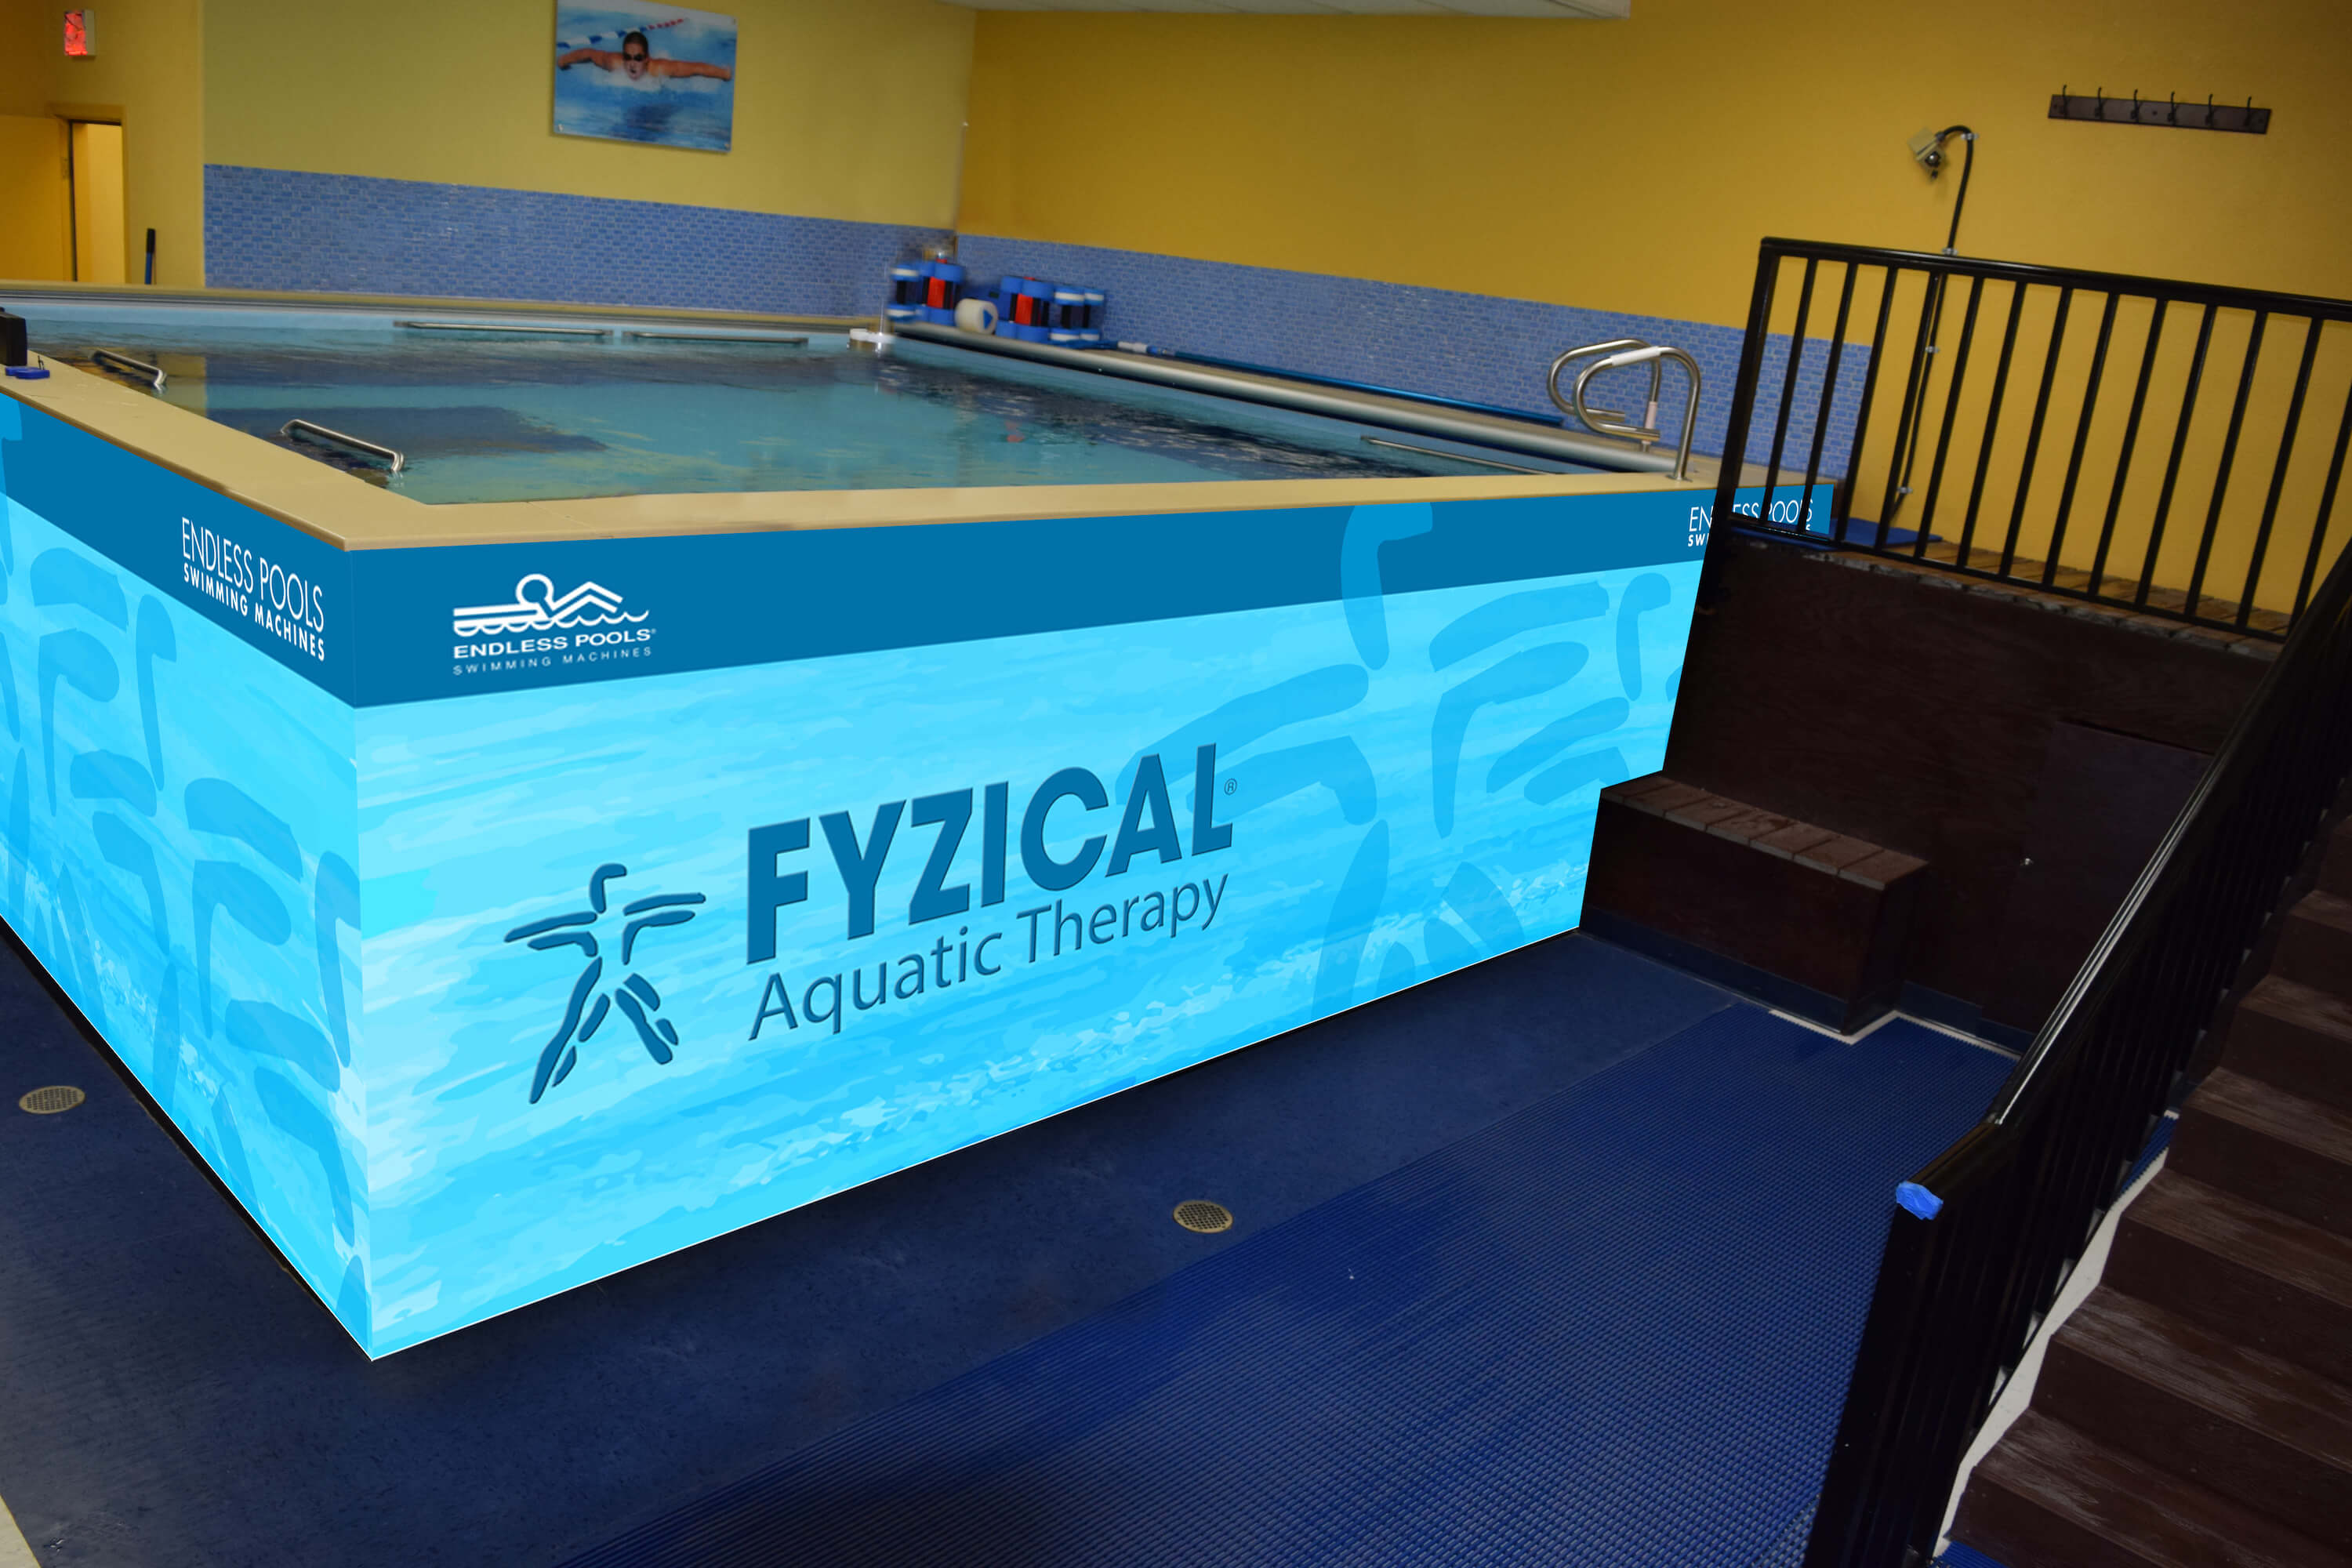 A Dual Propulsion Endless Pool planned for FYZICAL aquatic therapy in Yuma